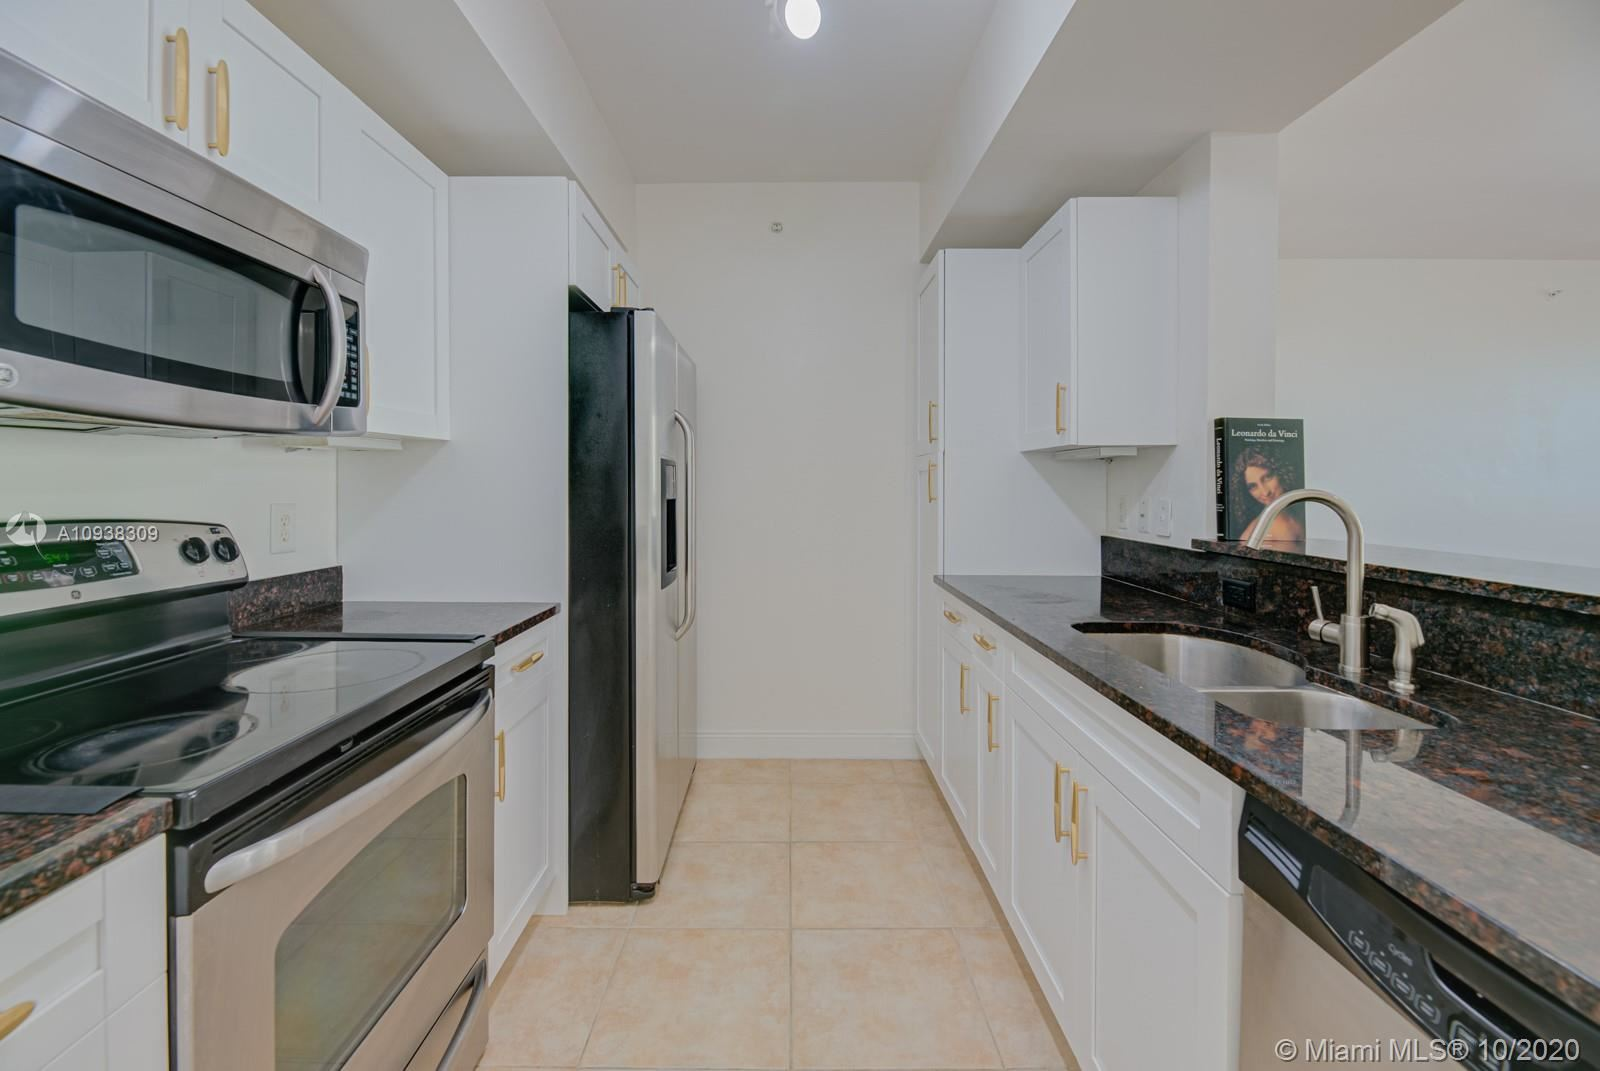 7350 SW 89th St #2110S, Miami, FL 33156 - #: A10938309